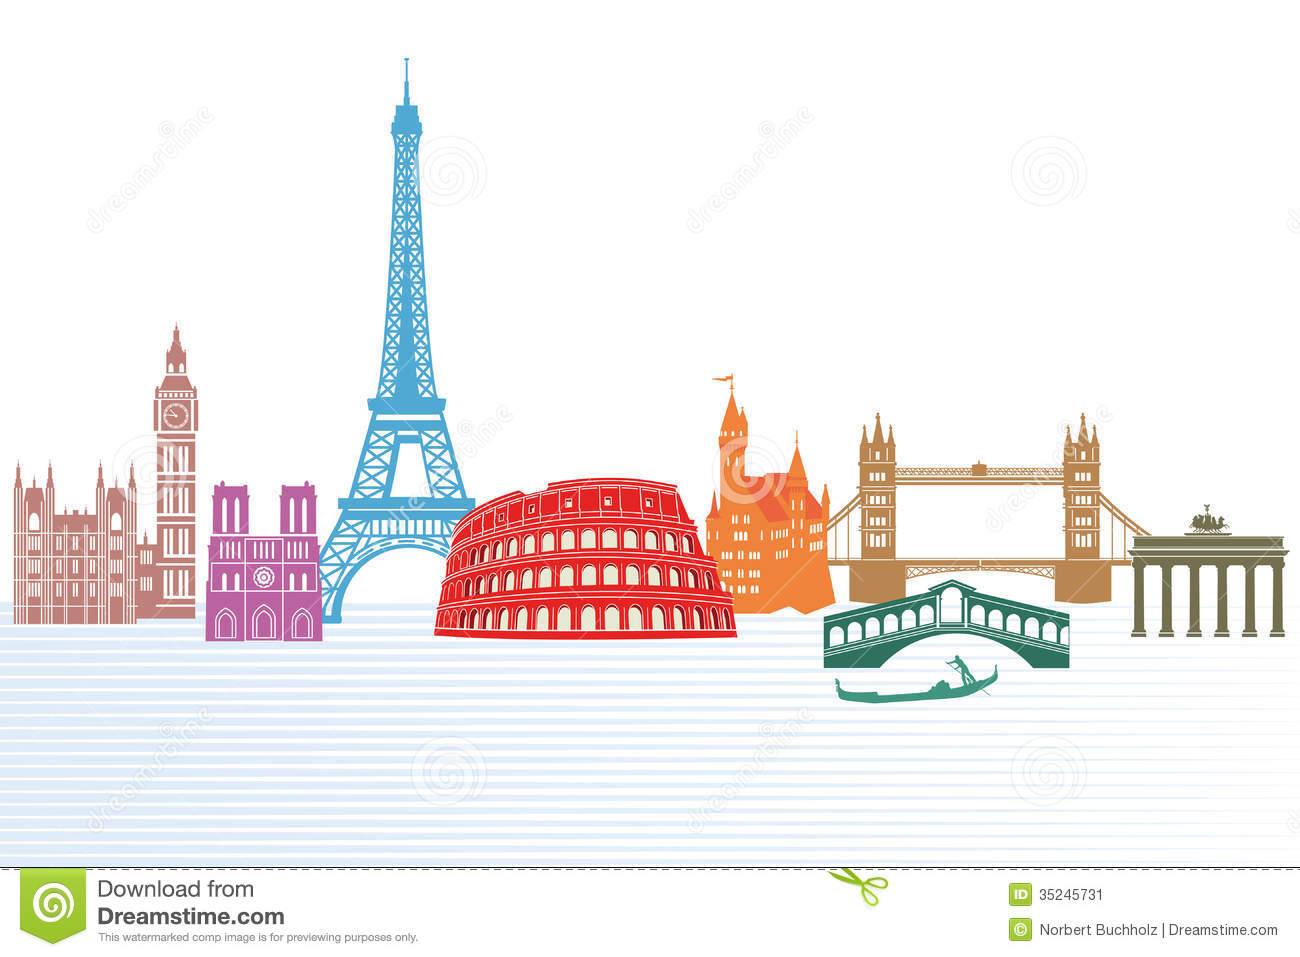 European landmarks stock vector. Illustration of illustrated.